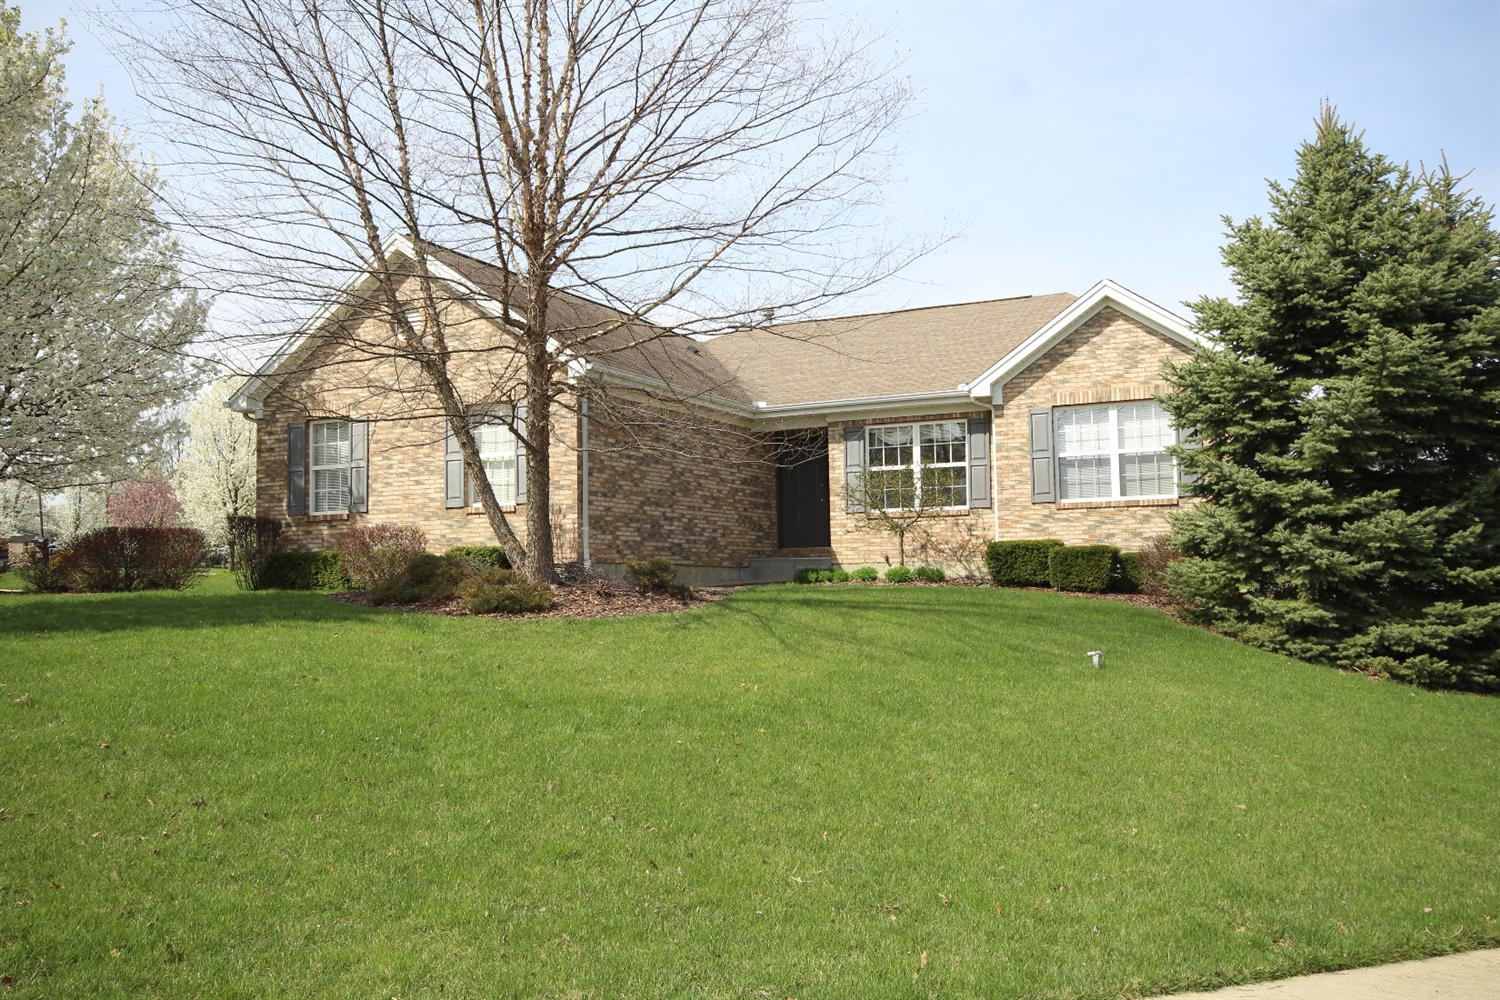 Photo 1 for 800 Hogrefe Rd Independence, KY 41051